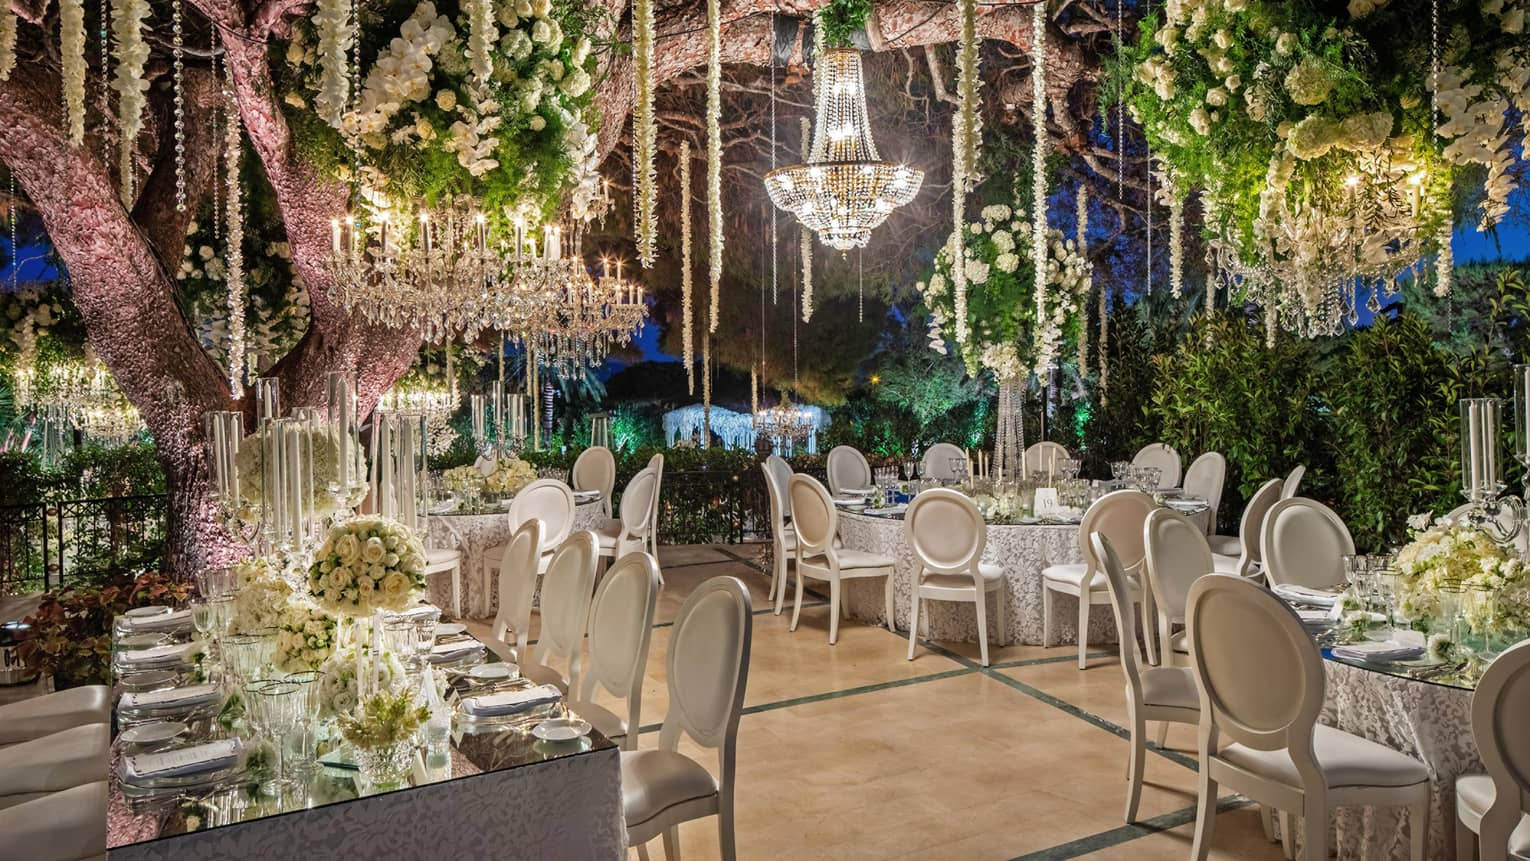 Four elegantly set mirrored-top tables with white chairs, crystal chandelier, floral arrangements hanging from ceiling